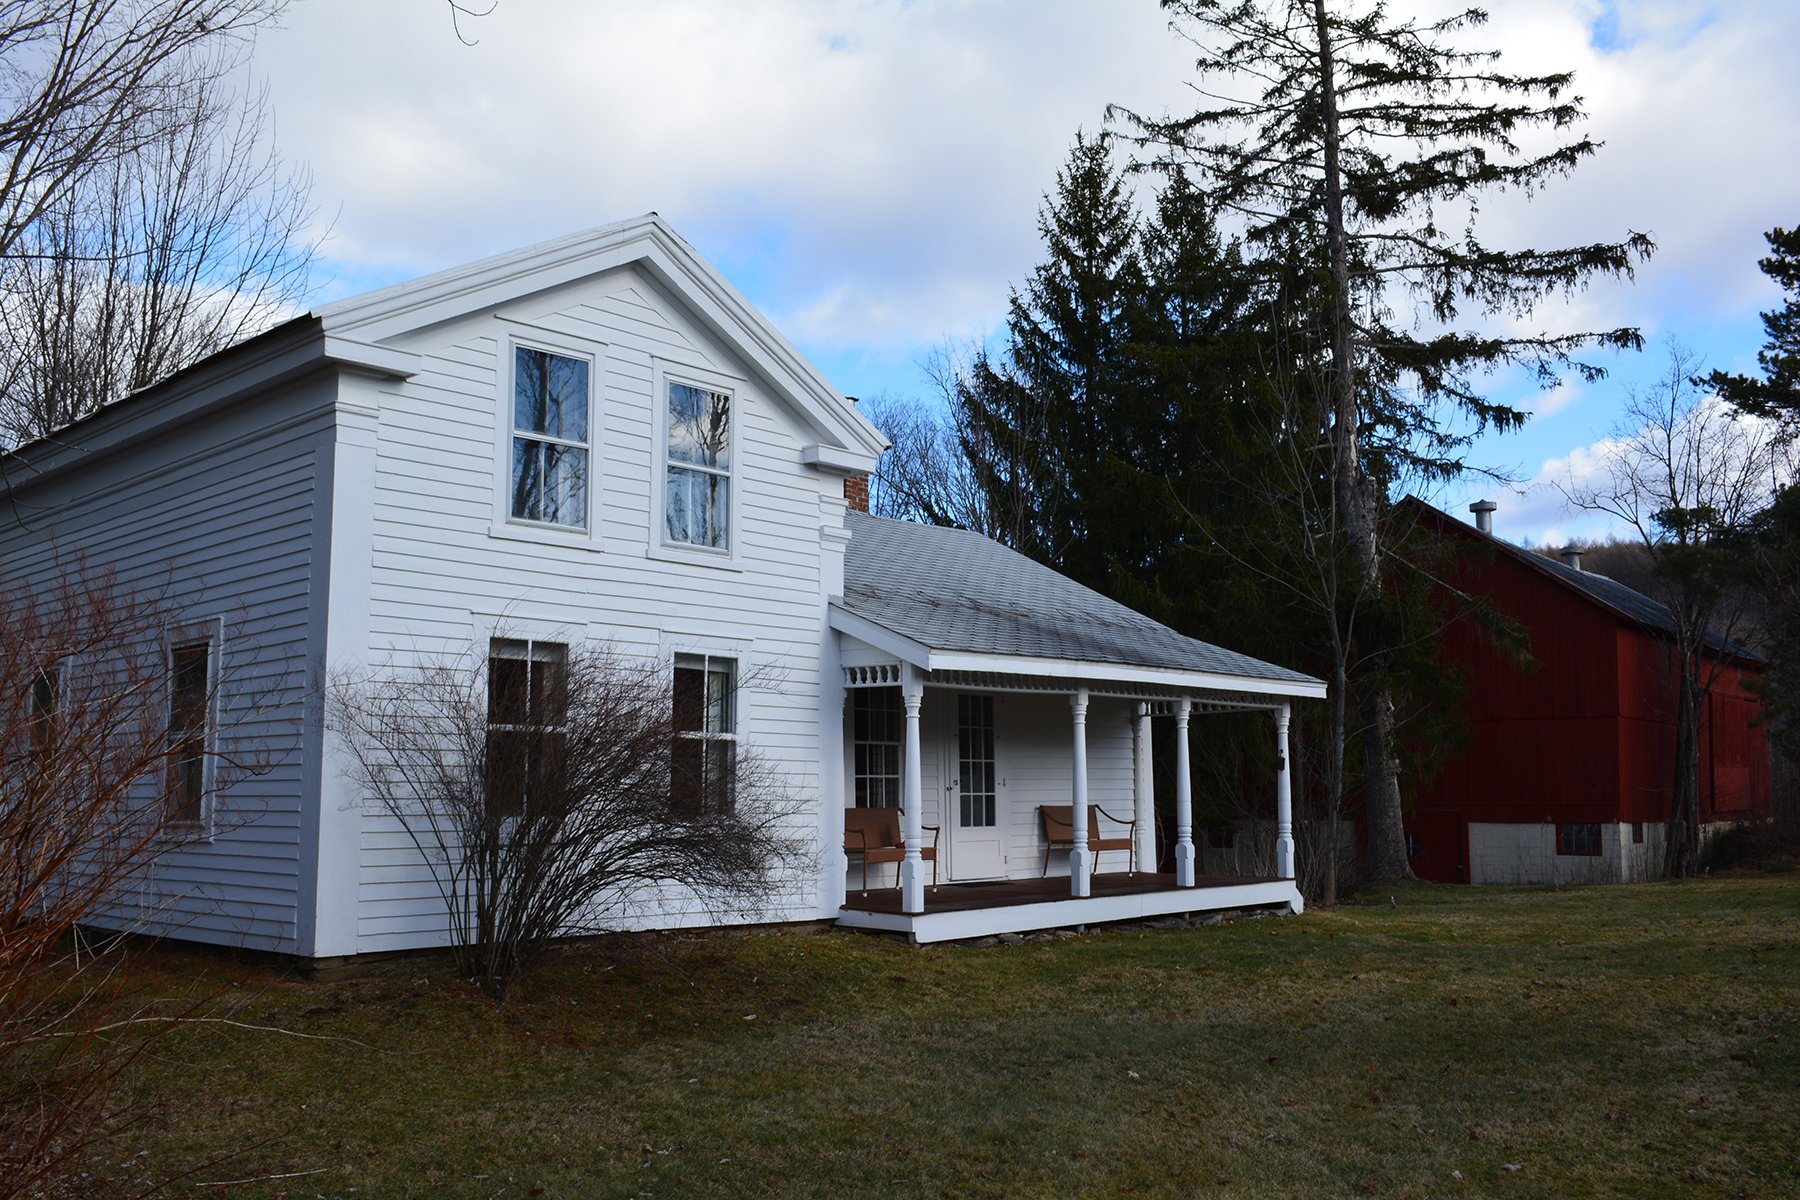 Single Family Home for Sale at Classic Farmhouse with Subdividable Land 6774 Cr23walton-sidney Rd Sidney Center, New York 13839 United States